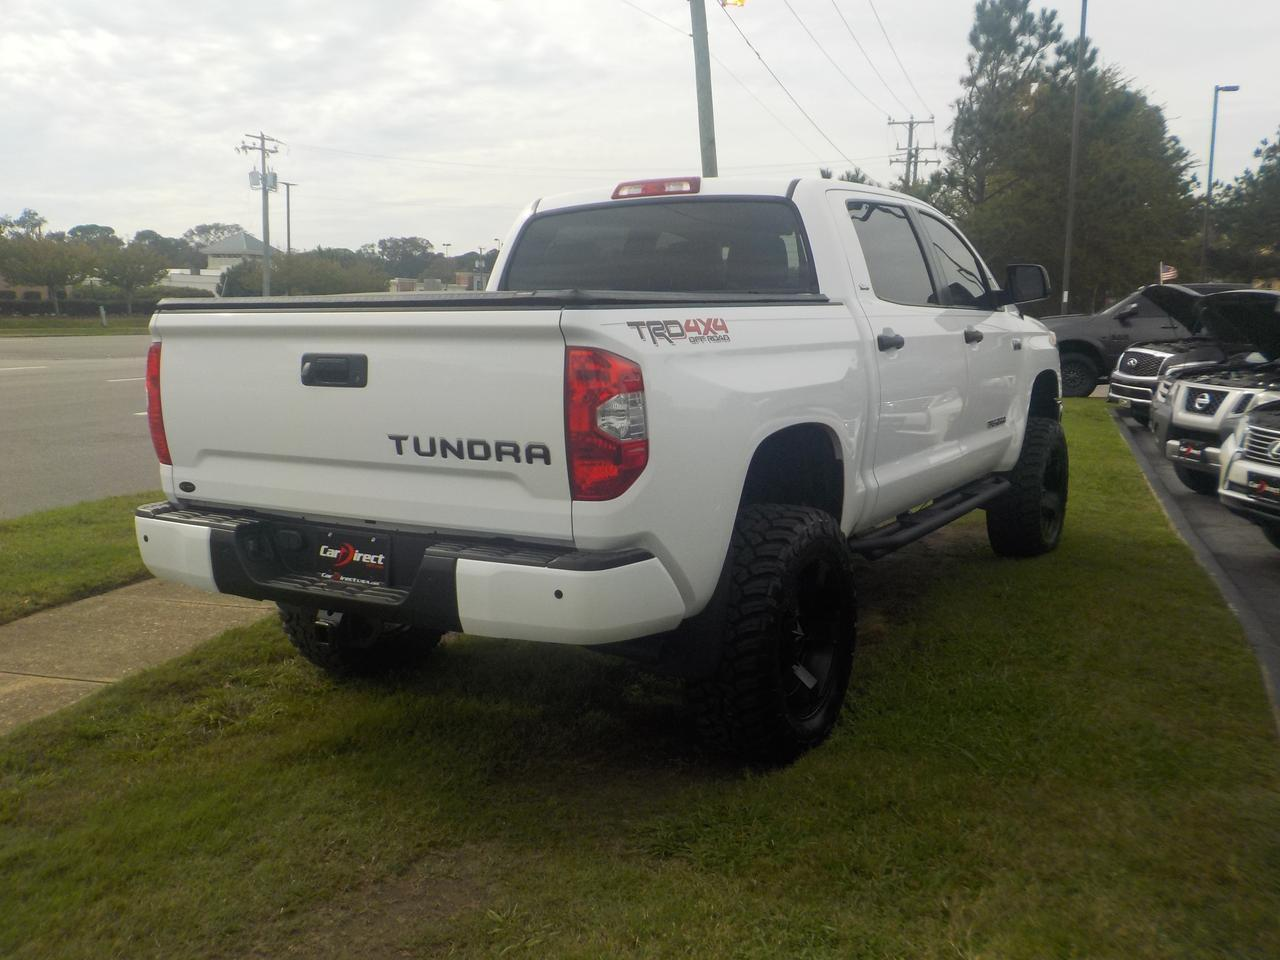 2016 TOYOTA TUNDRA SR5 CREWMAX TRD OFFROAD 4X4, LIFTED, XD WHEELS, NAVIGATION, TOW PKG, BACKUP CAM,ONLY 43K MILES! Virginia Beach VA